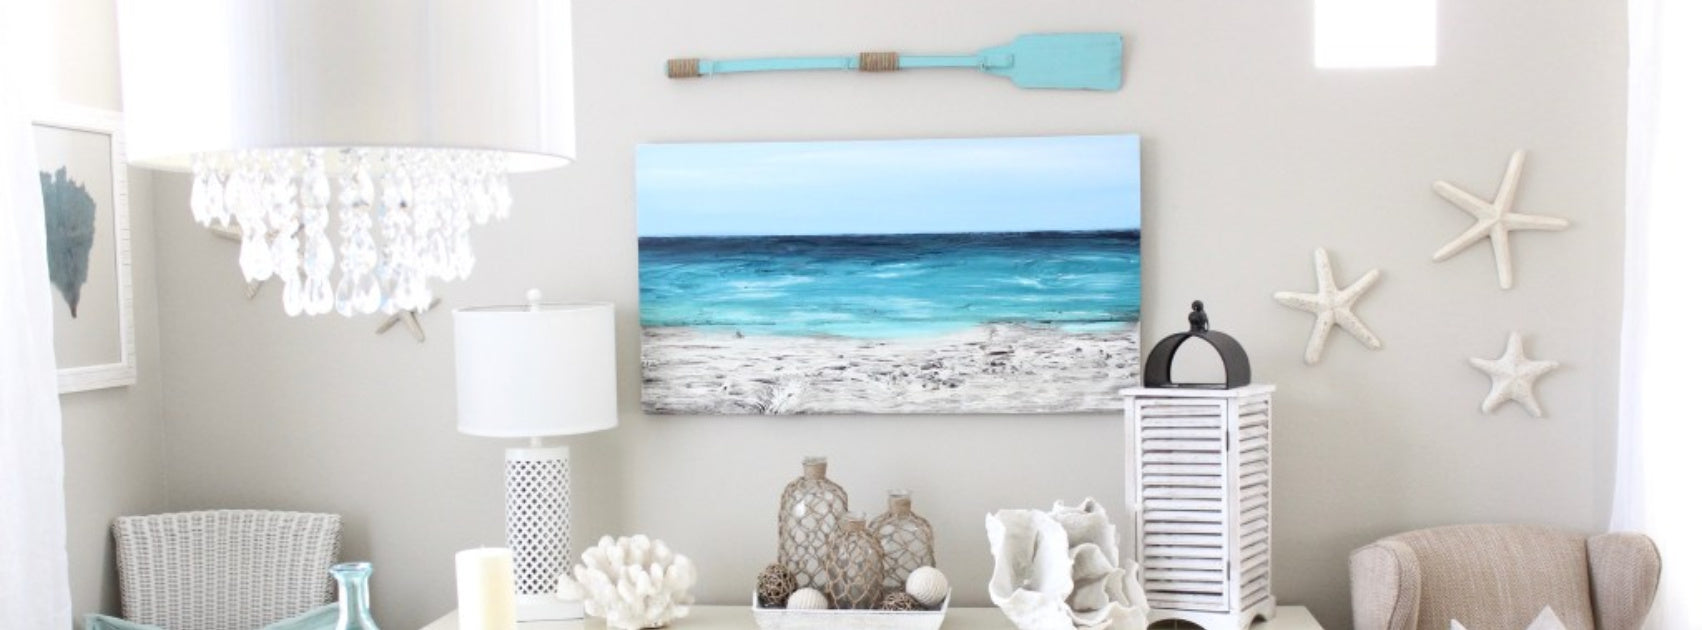 4 ways to add a beach feel to your home